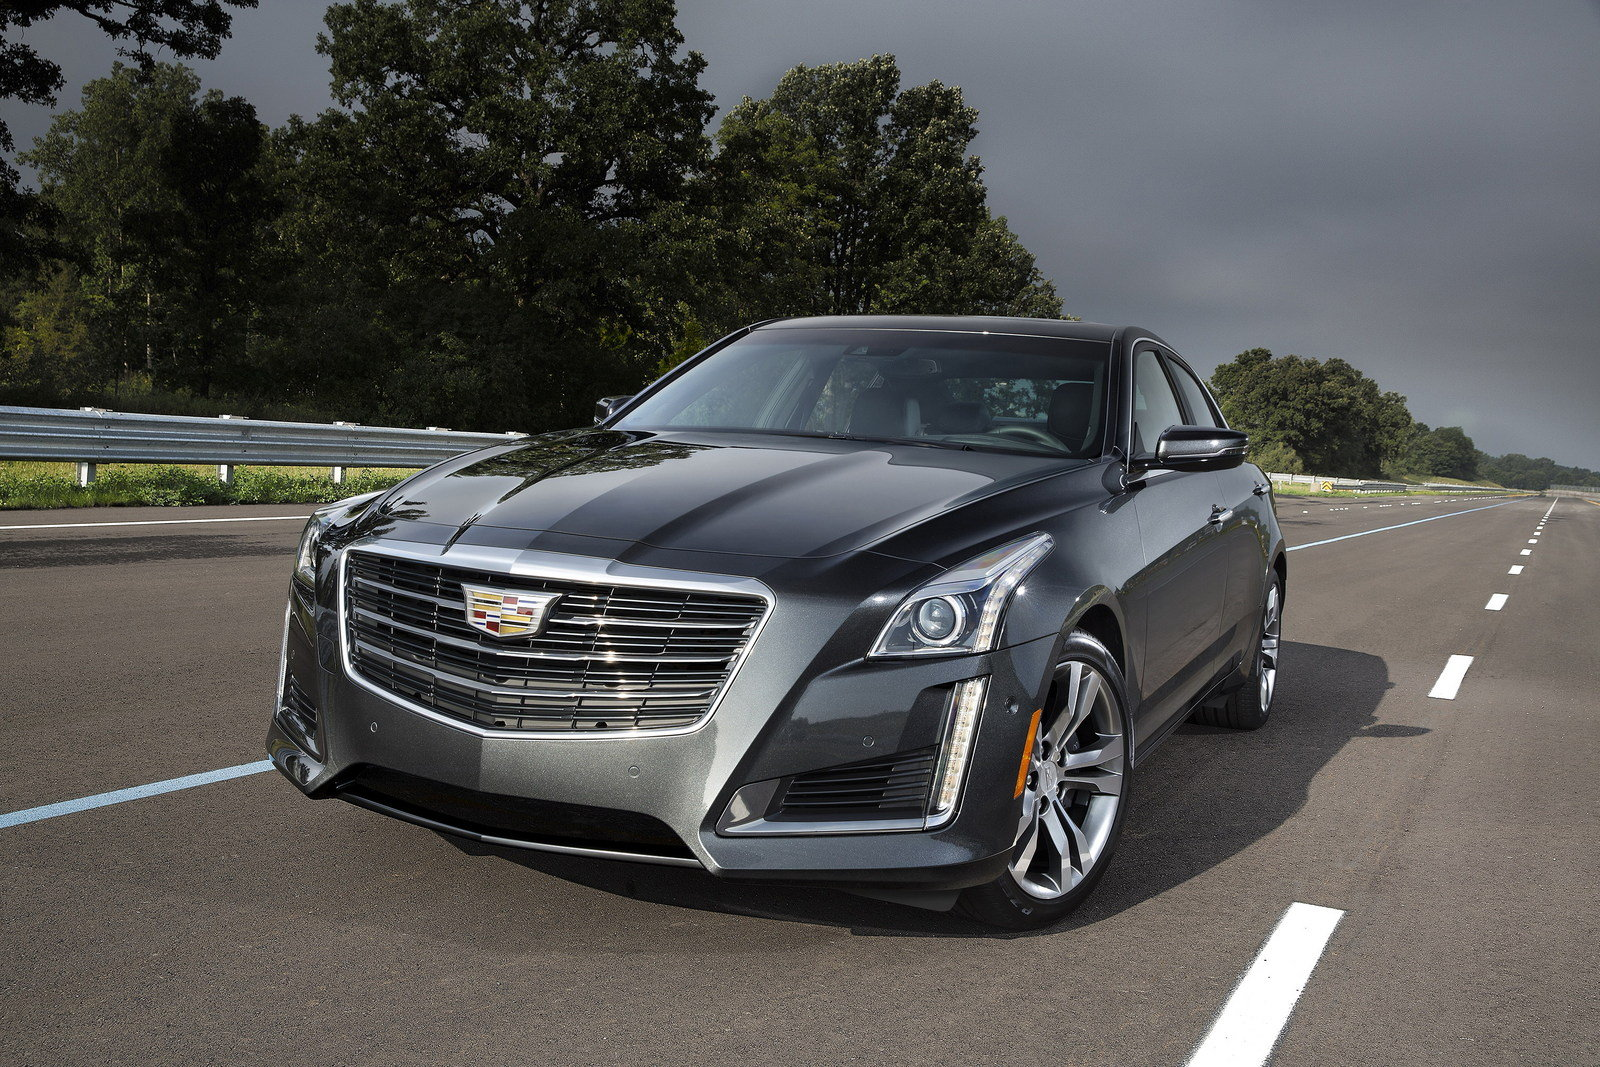 2015 2016 cadillac cts sedan picture 650371 car review top speed. Black Bedroom Furniture Sets. Home Design Ideas